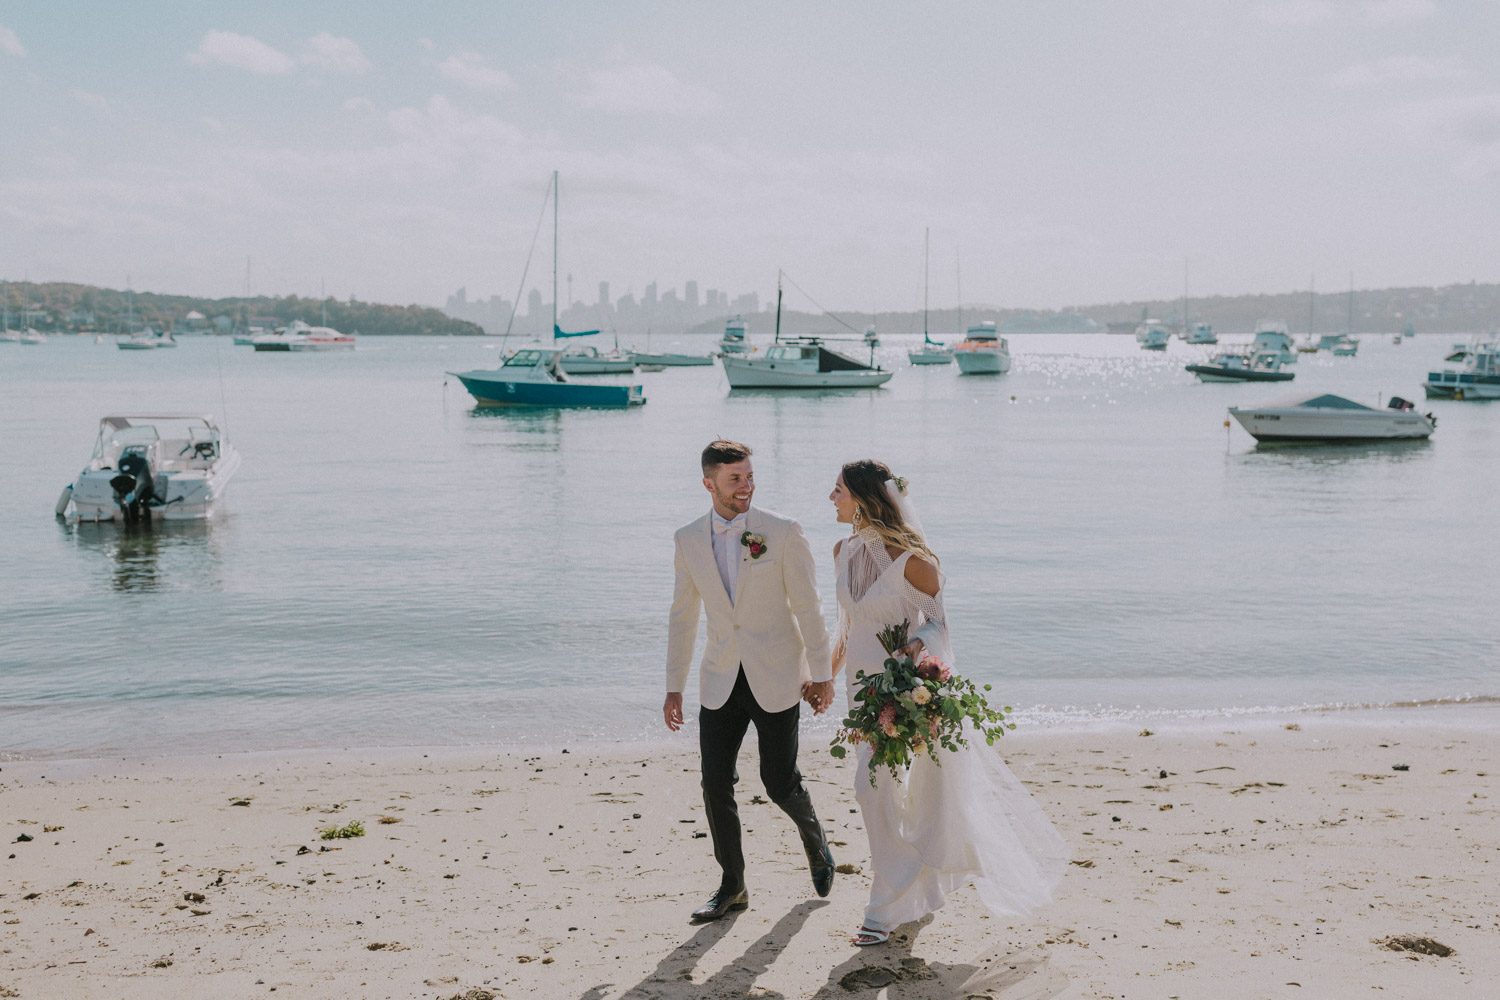 bride and groom walk on the beach at Watsons Bay,Sydney